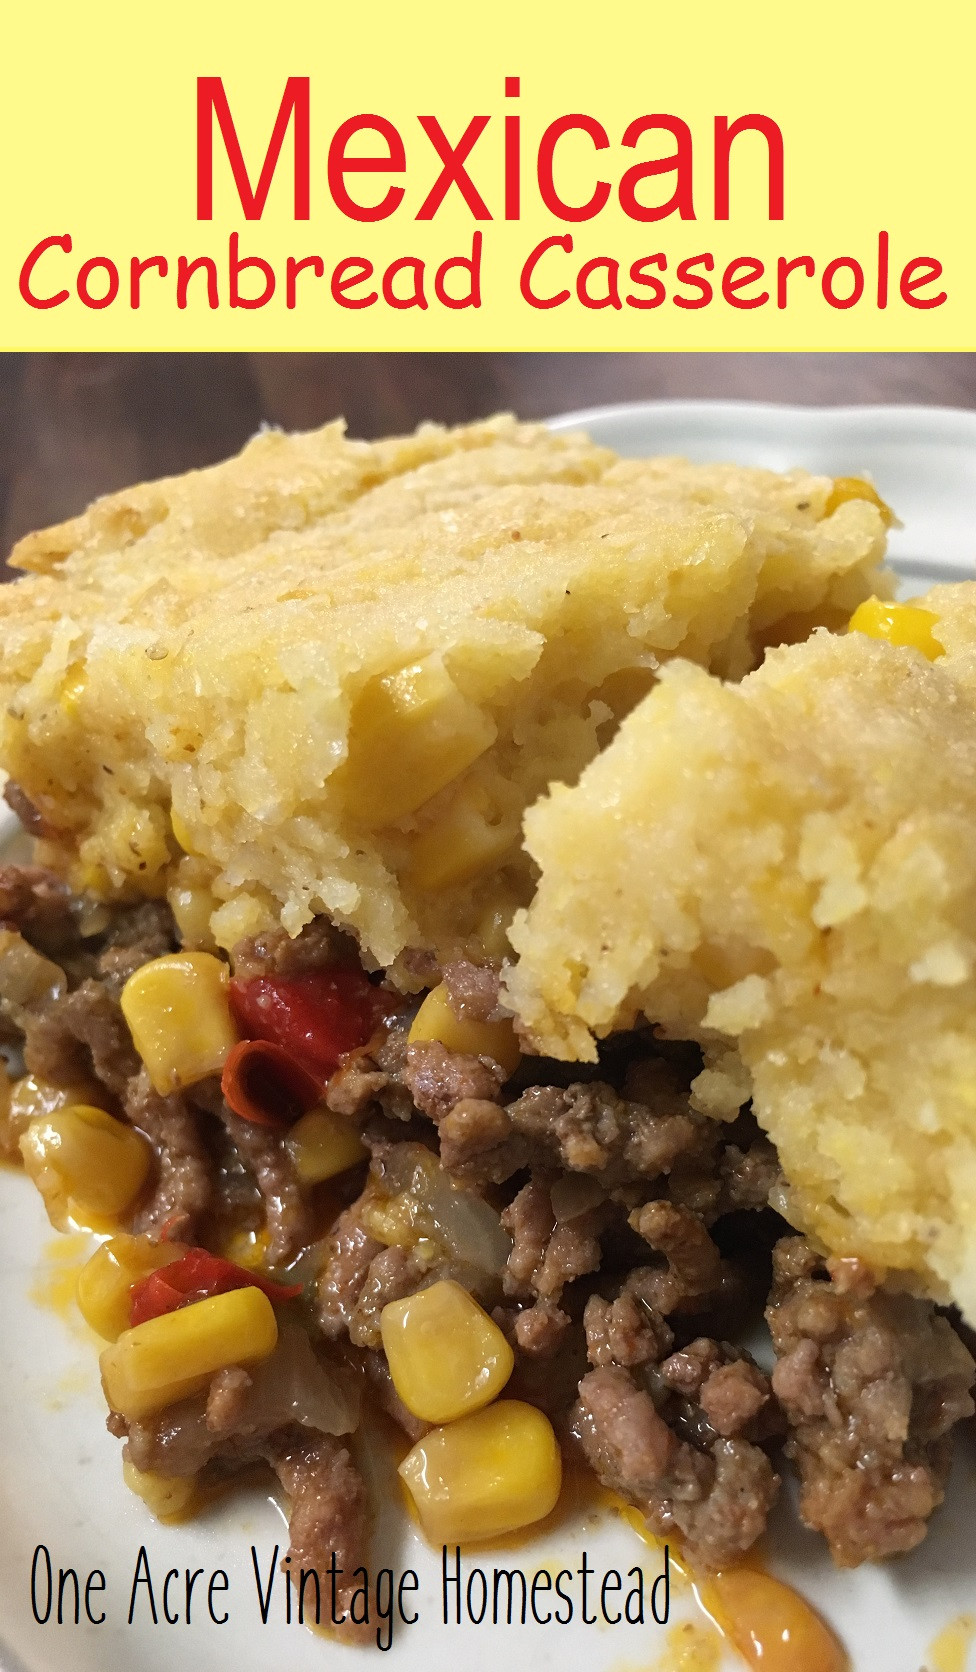 Mexican Casserole With Cornbread Topping  Mexican Cornbread Casserole ⋆ e Acre Vintage & Pumpkin